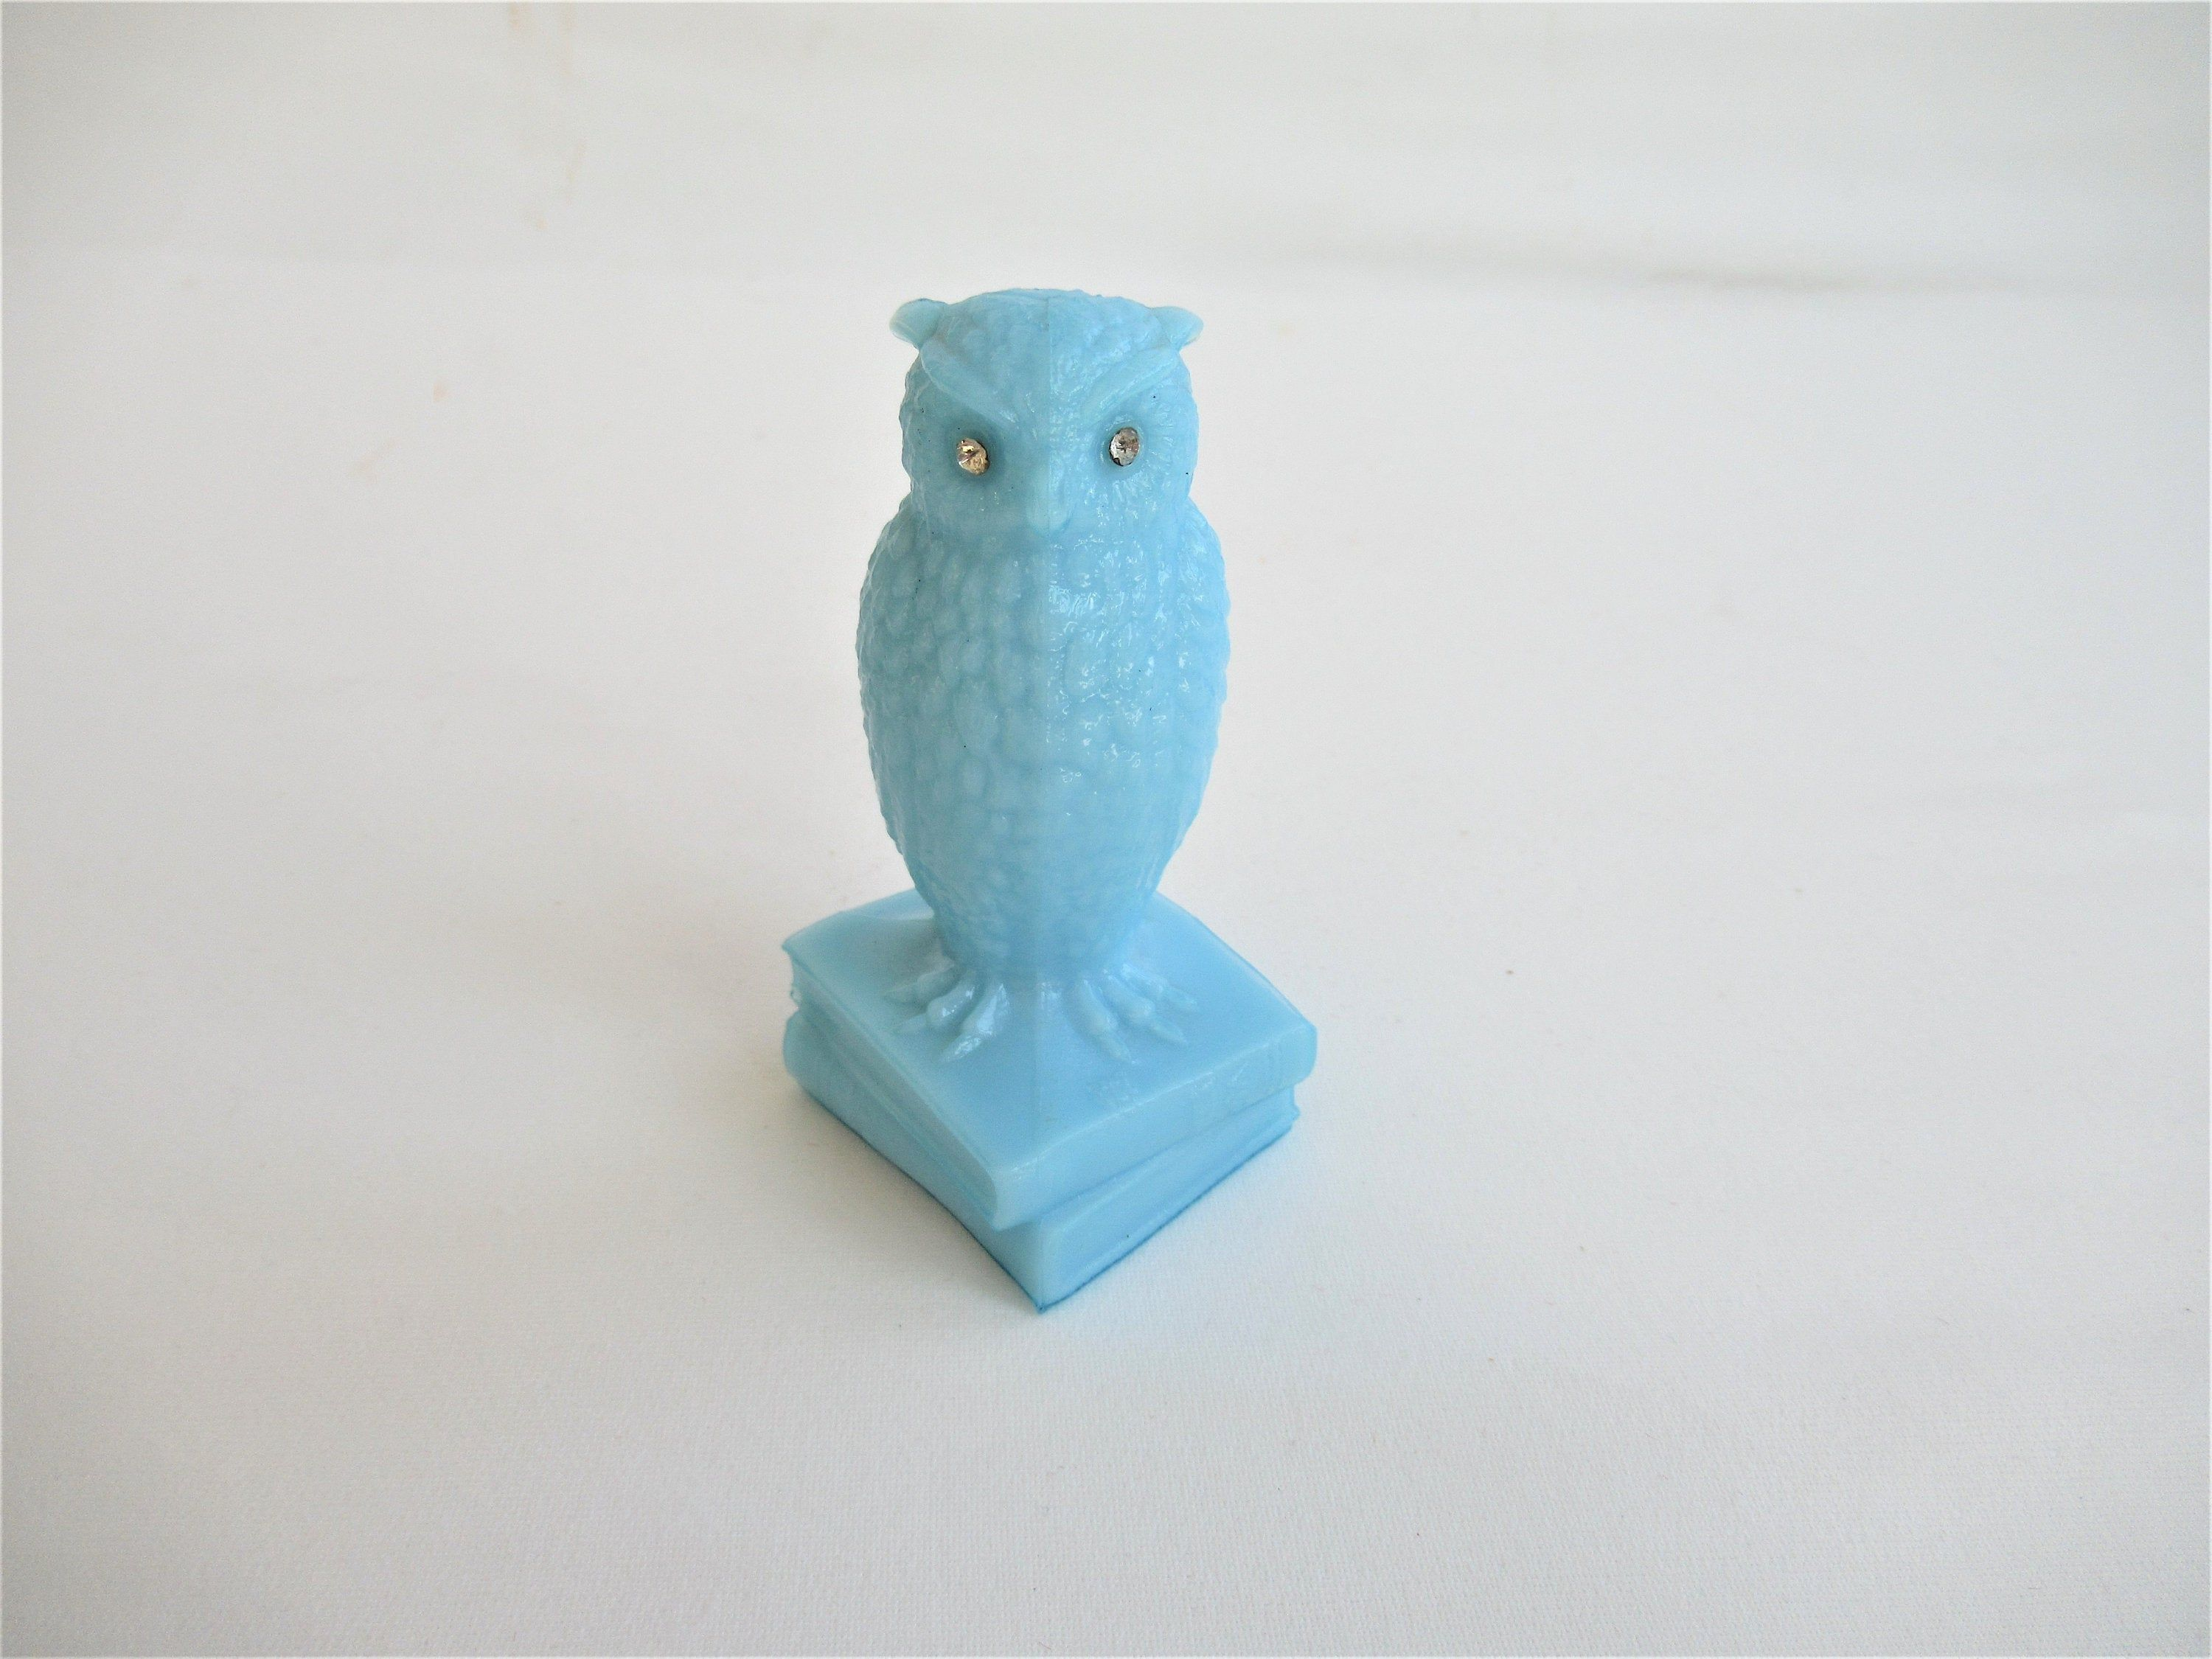 Vintage Blue Glass Owl On Books Figurine Westmoreland Light Blue With Rhinestone Eyes 3 Tall Blue Glass Figurines Owl Collection